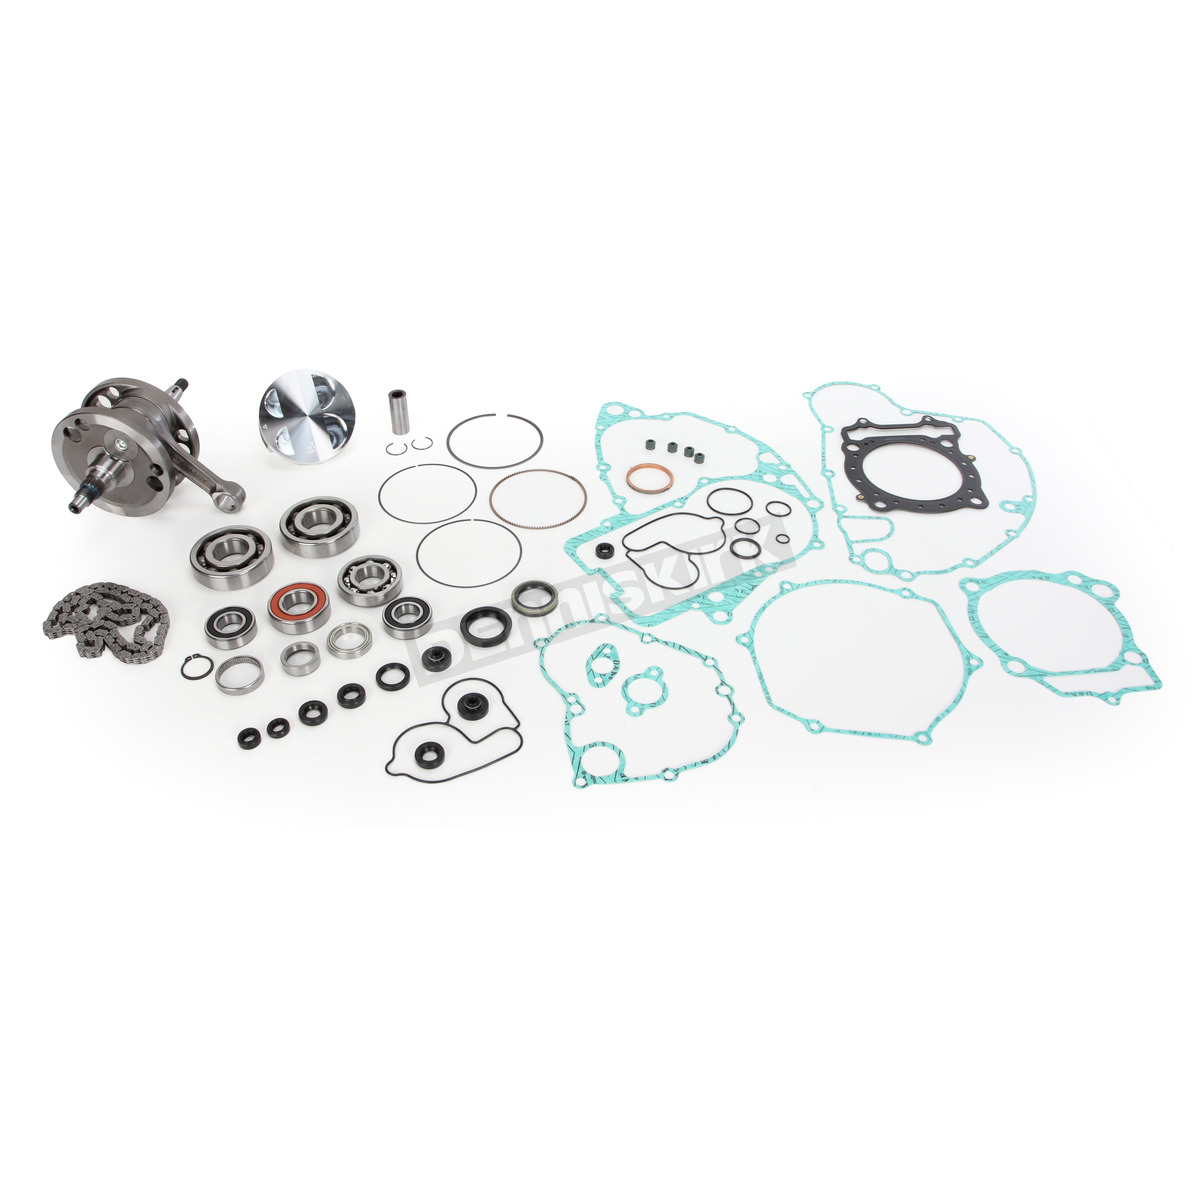 Wrench Rabbit Complete Engine Rebuild Kit 95 5mm Bore